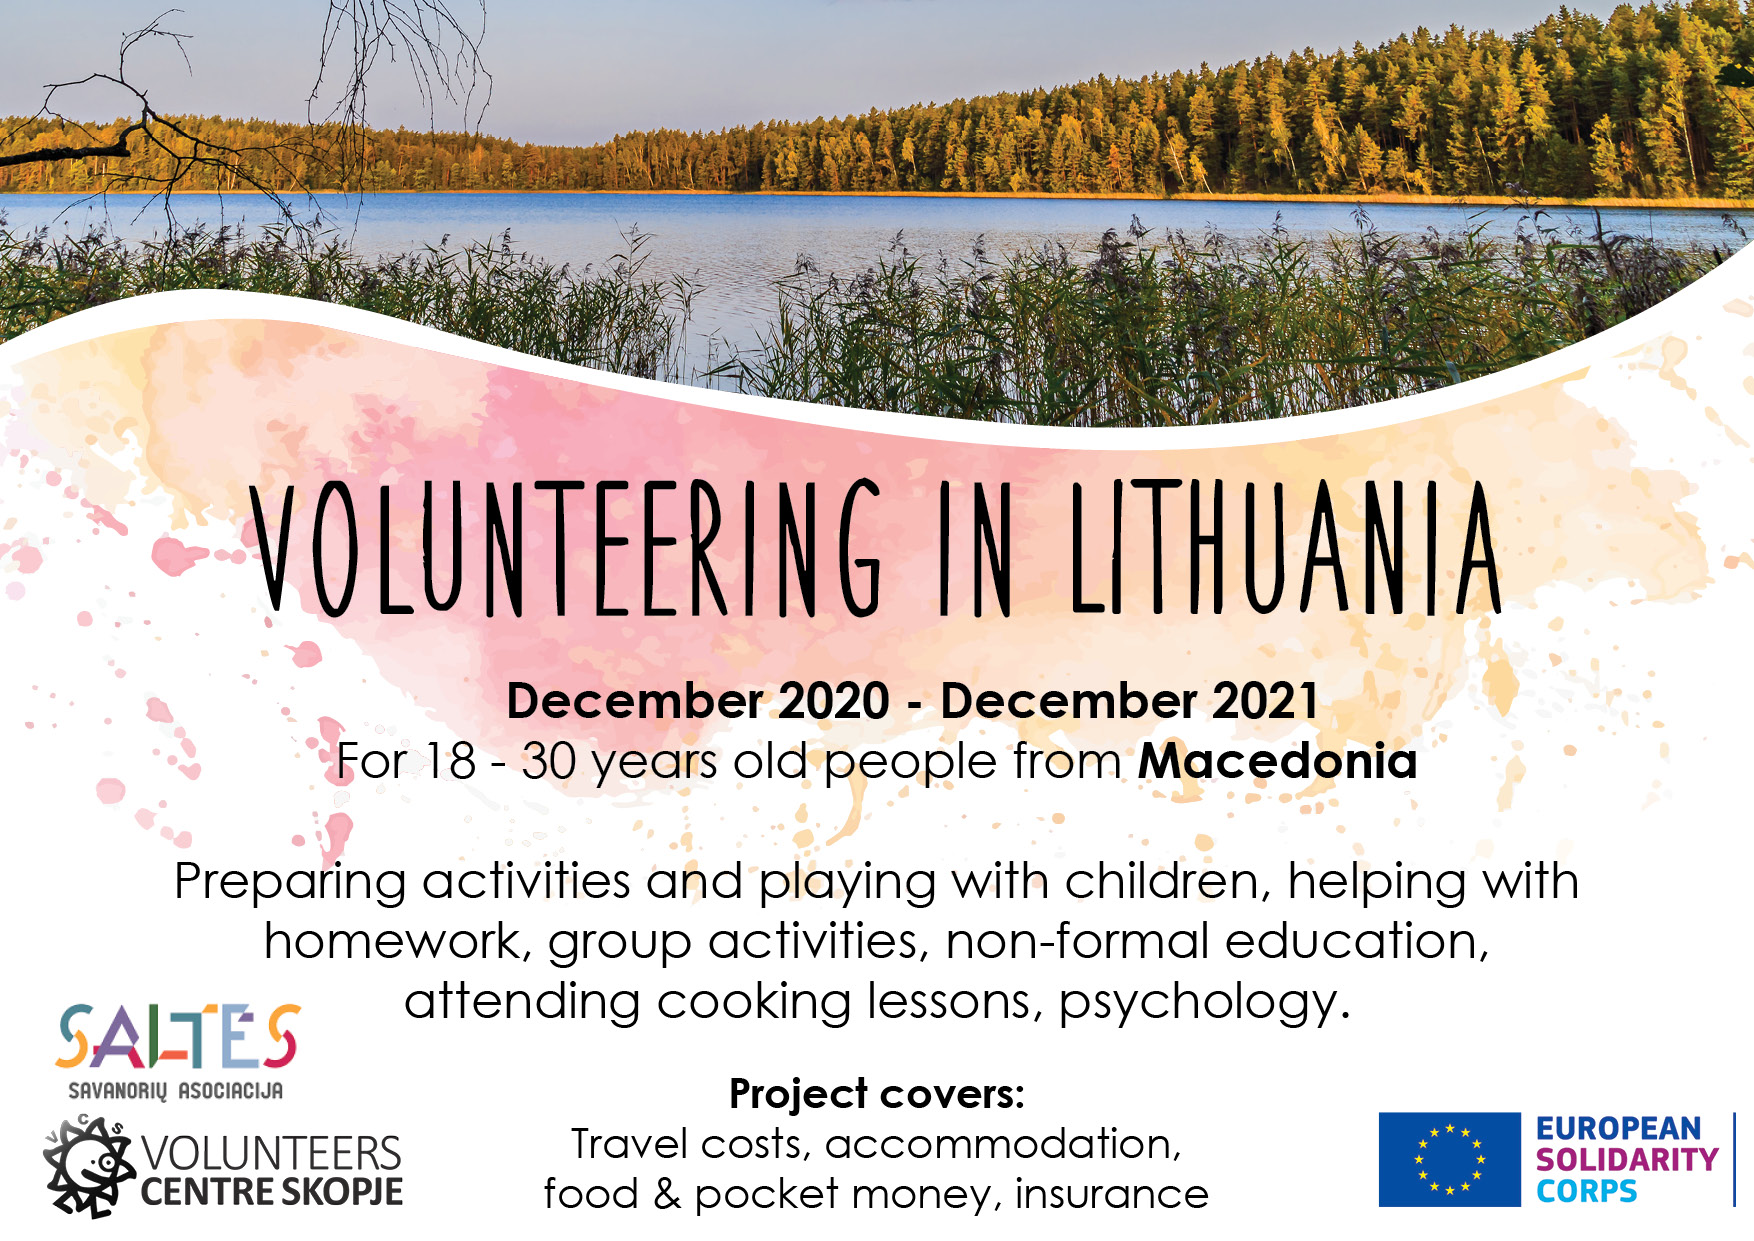 Call for volunteer in Lithuania!